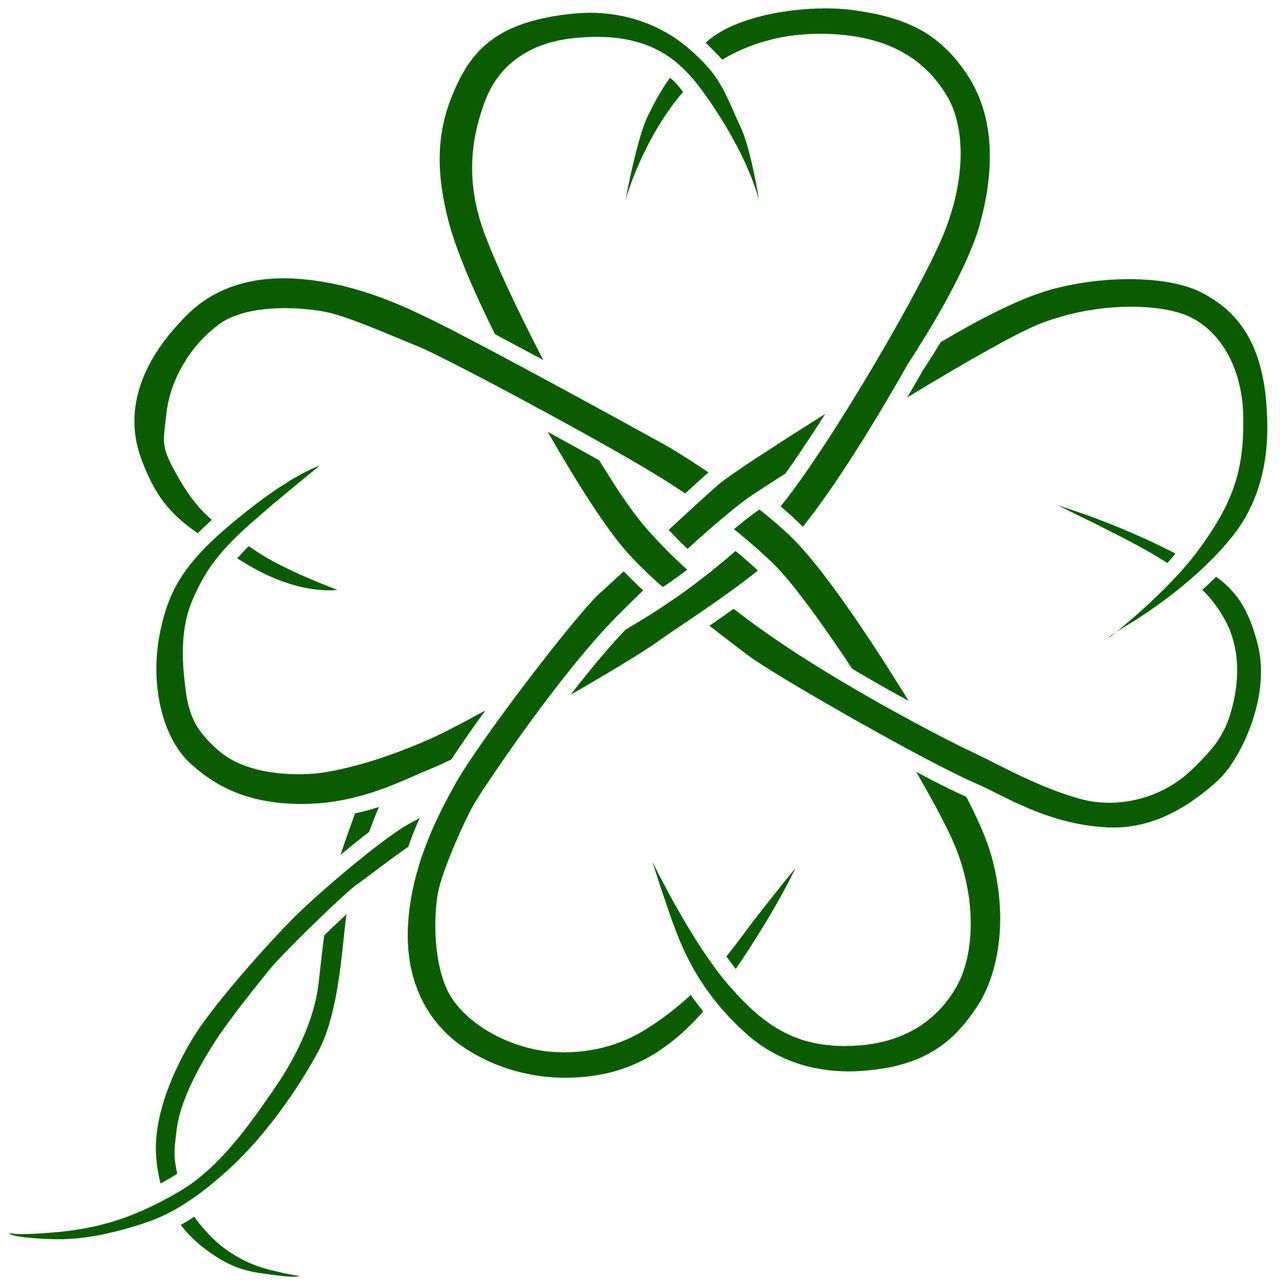 Coloring pages 4 leaf clover - Four Leaf Clover Foot Tattoo Tattoes Idea 2015 2016